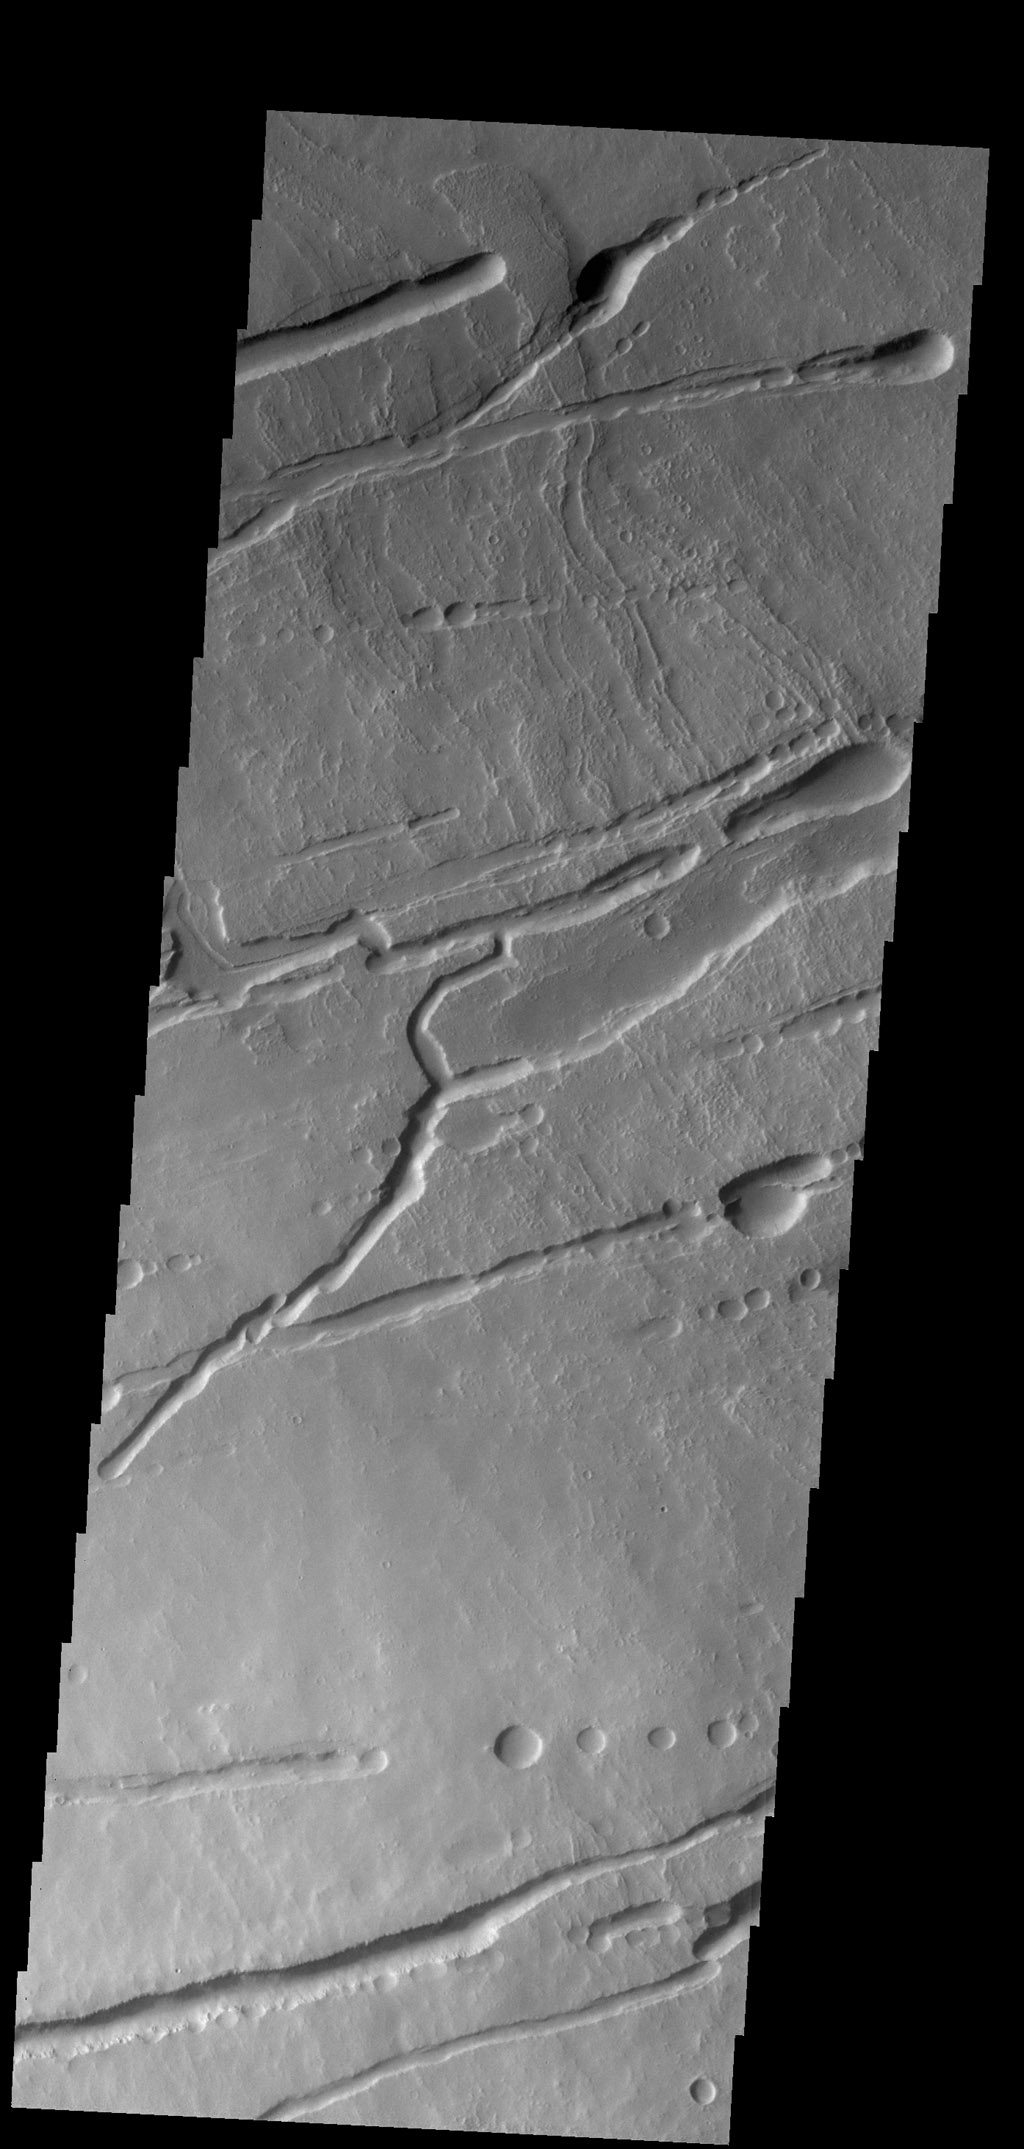 The fractures, collapse features and lava flows in this image captured by NASA's 2001 Mars Odyssey spacecraft are all located on the northern flank of Ascraeus Mons.